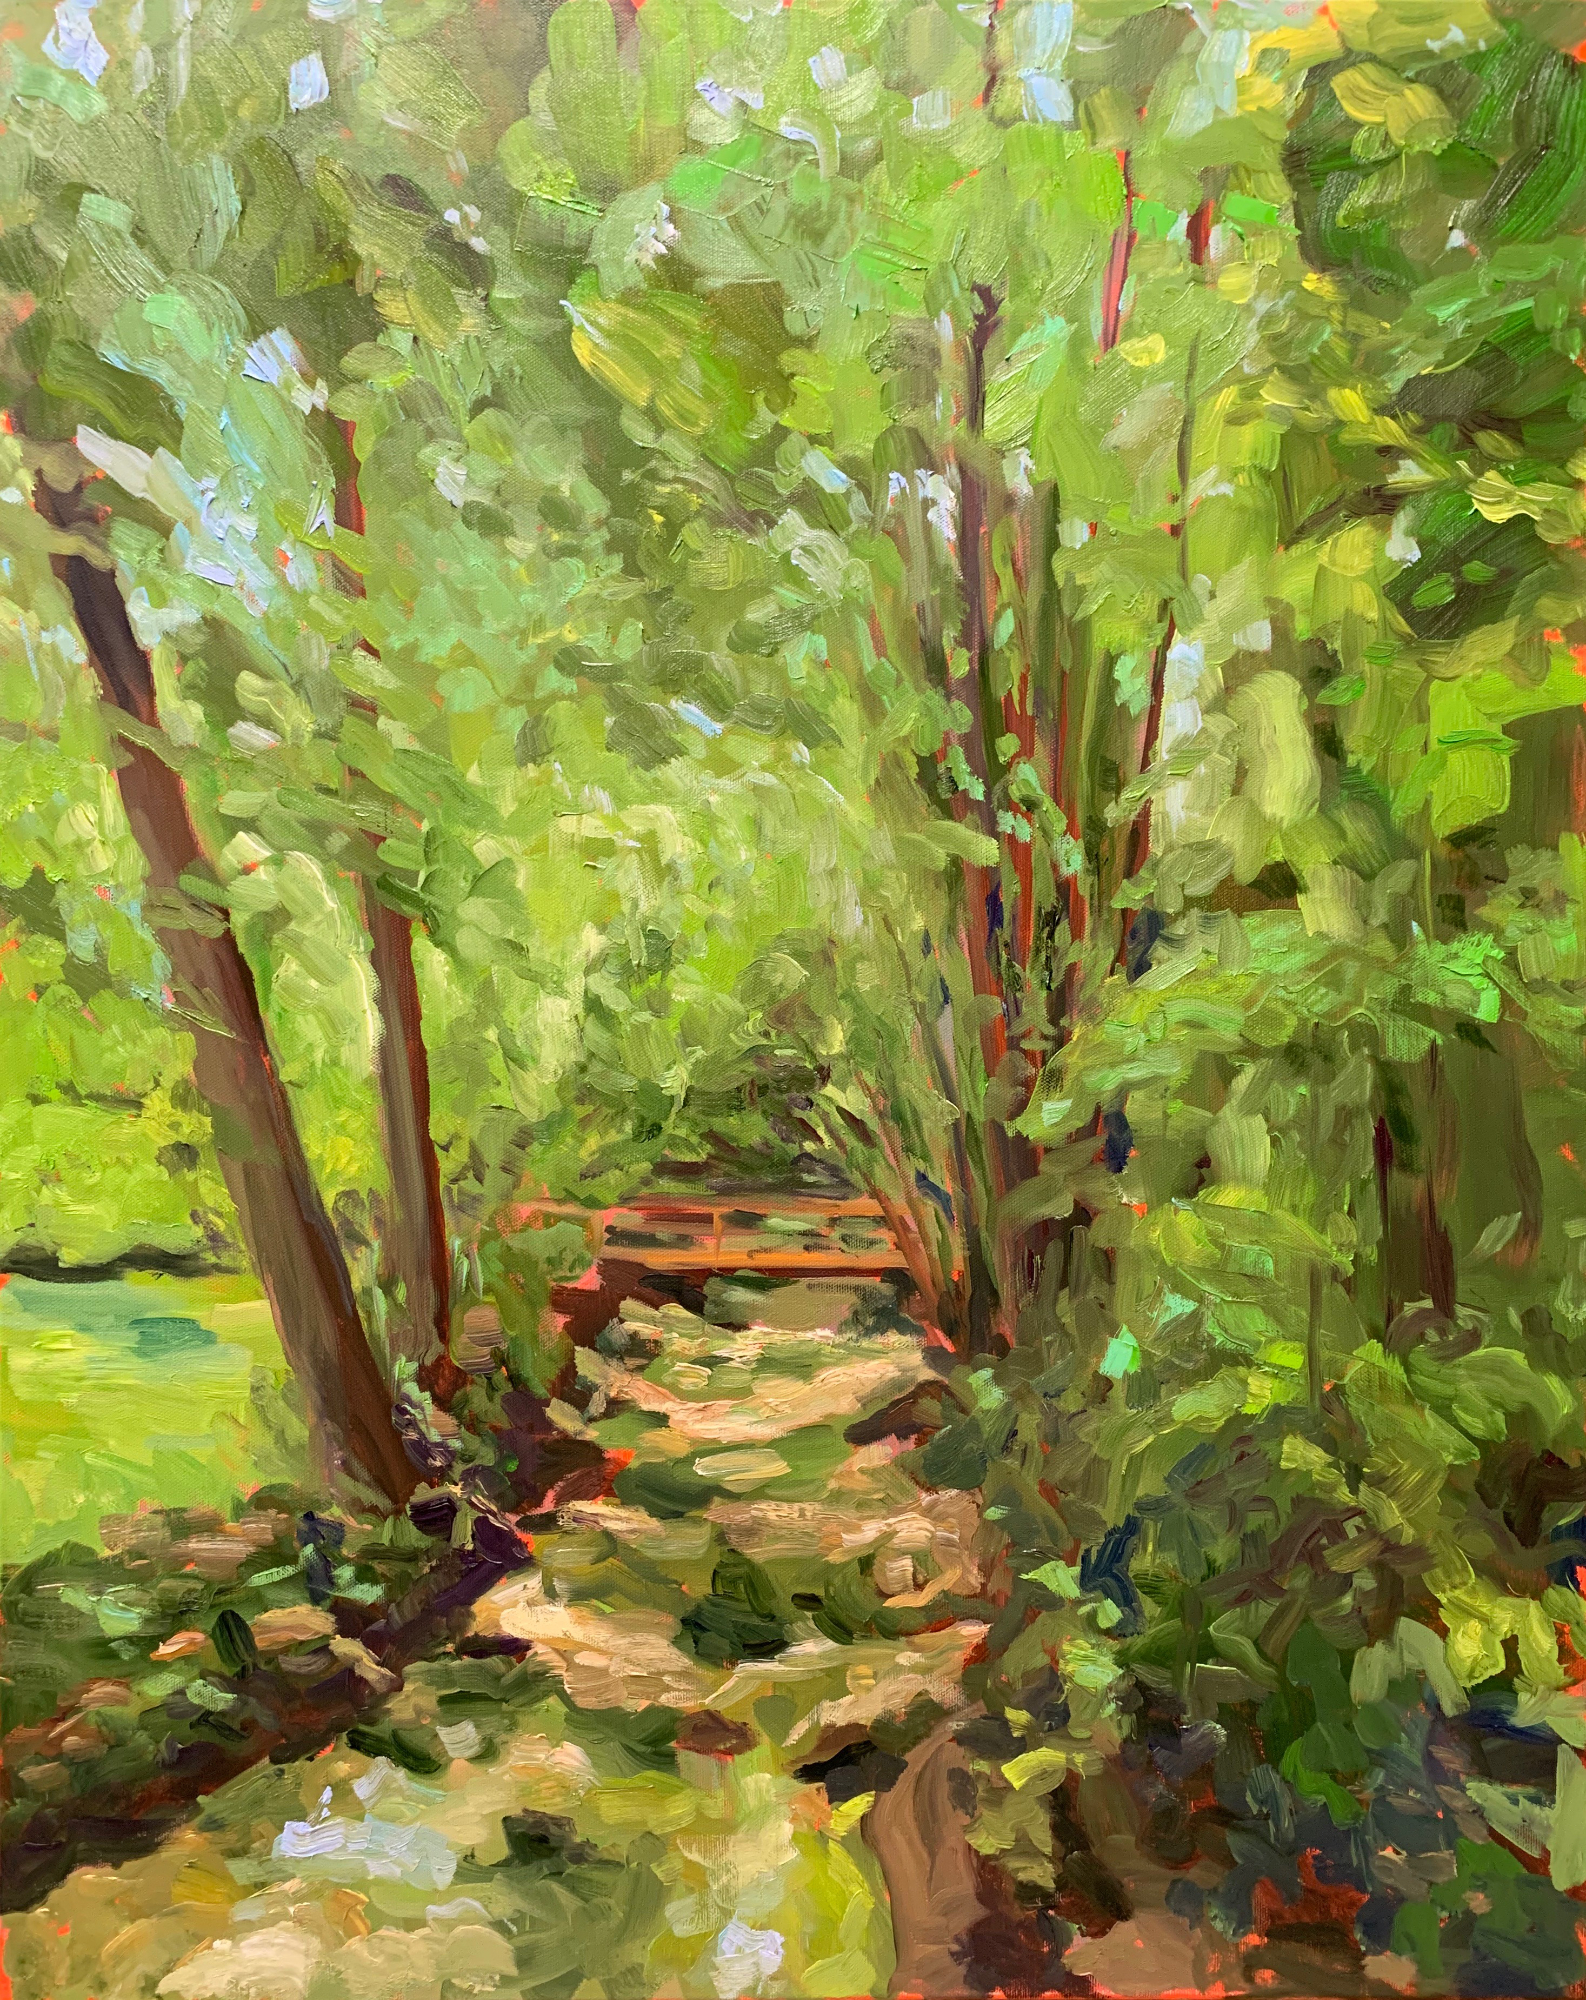 Backyard Creek, original oil painting by Bart Levy